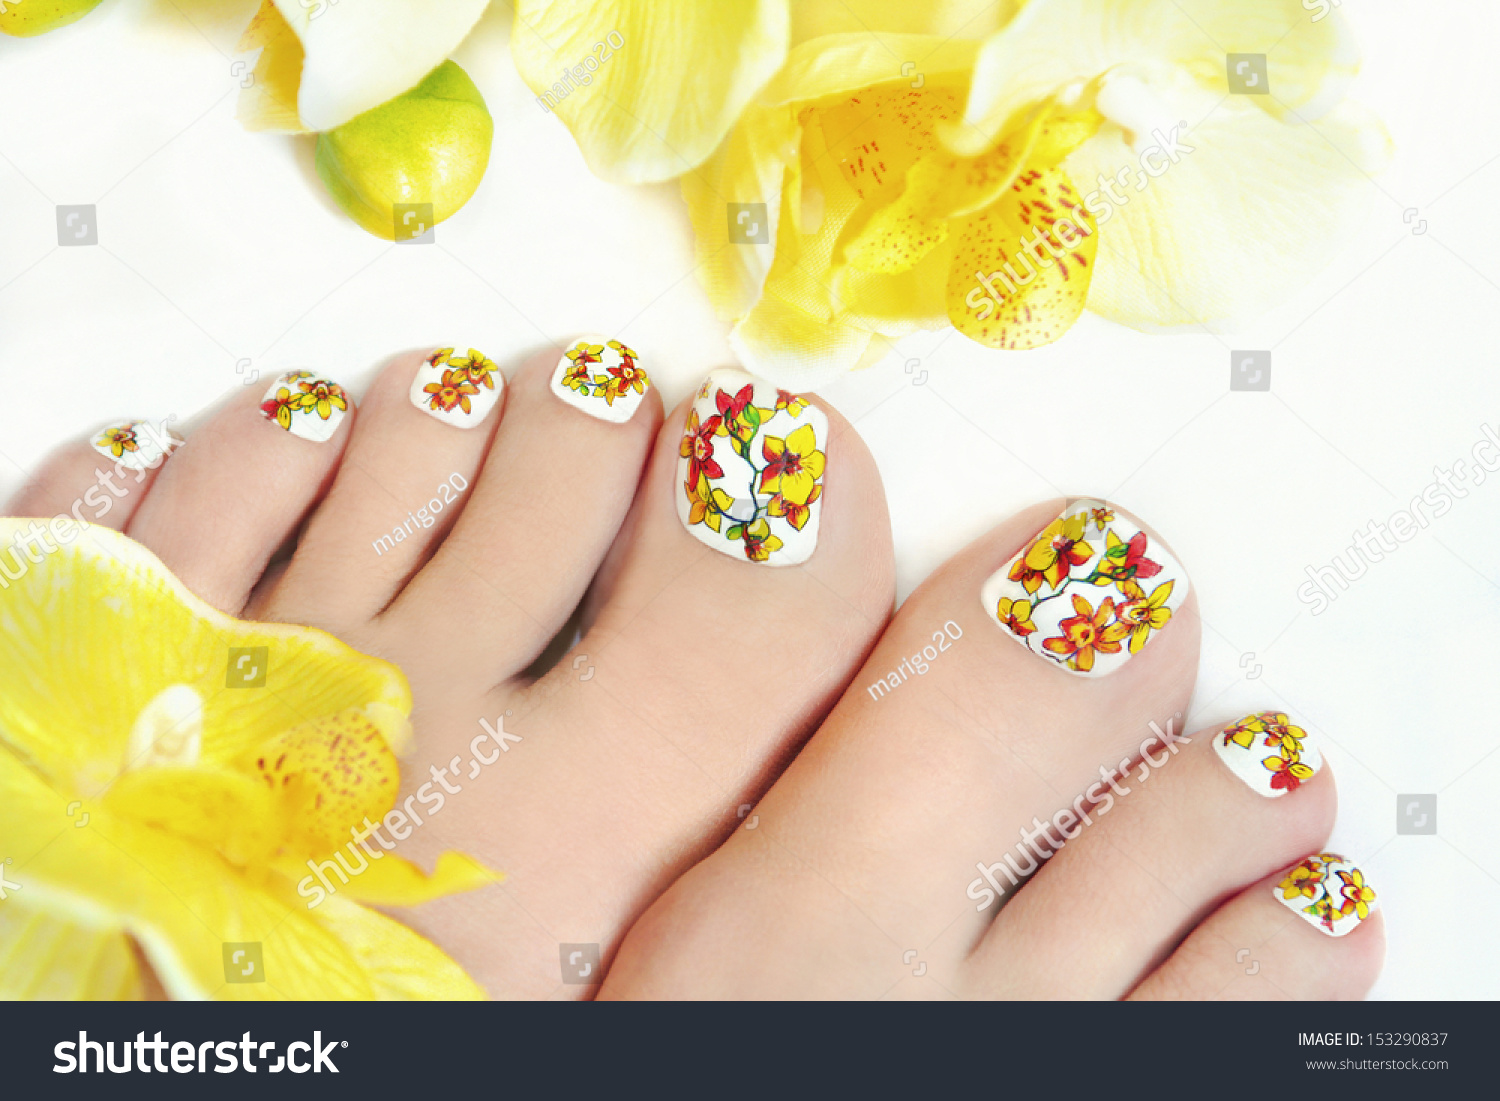 Nail art design on womens legs stock photo 153290837 shutterstock nail art design on womens legs with orchids on a white background prinsesfo Images